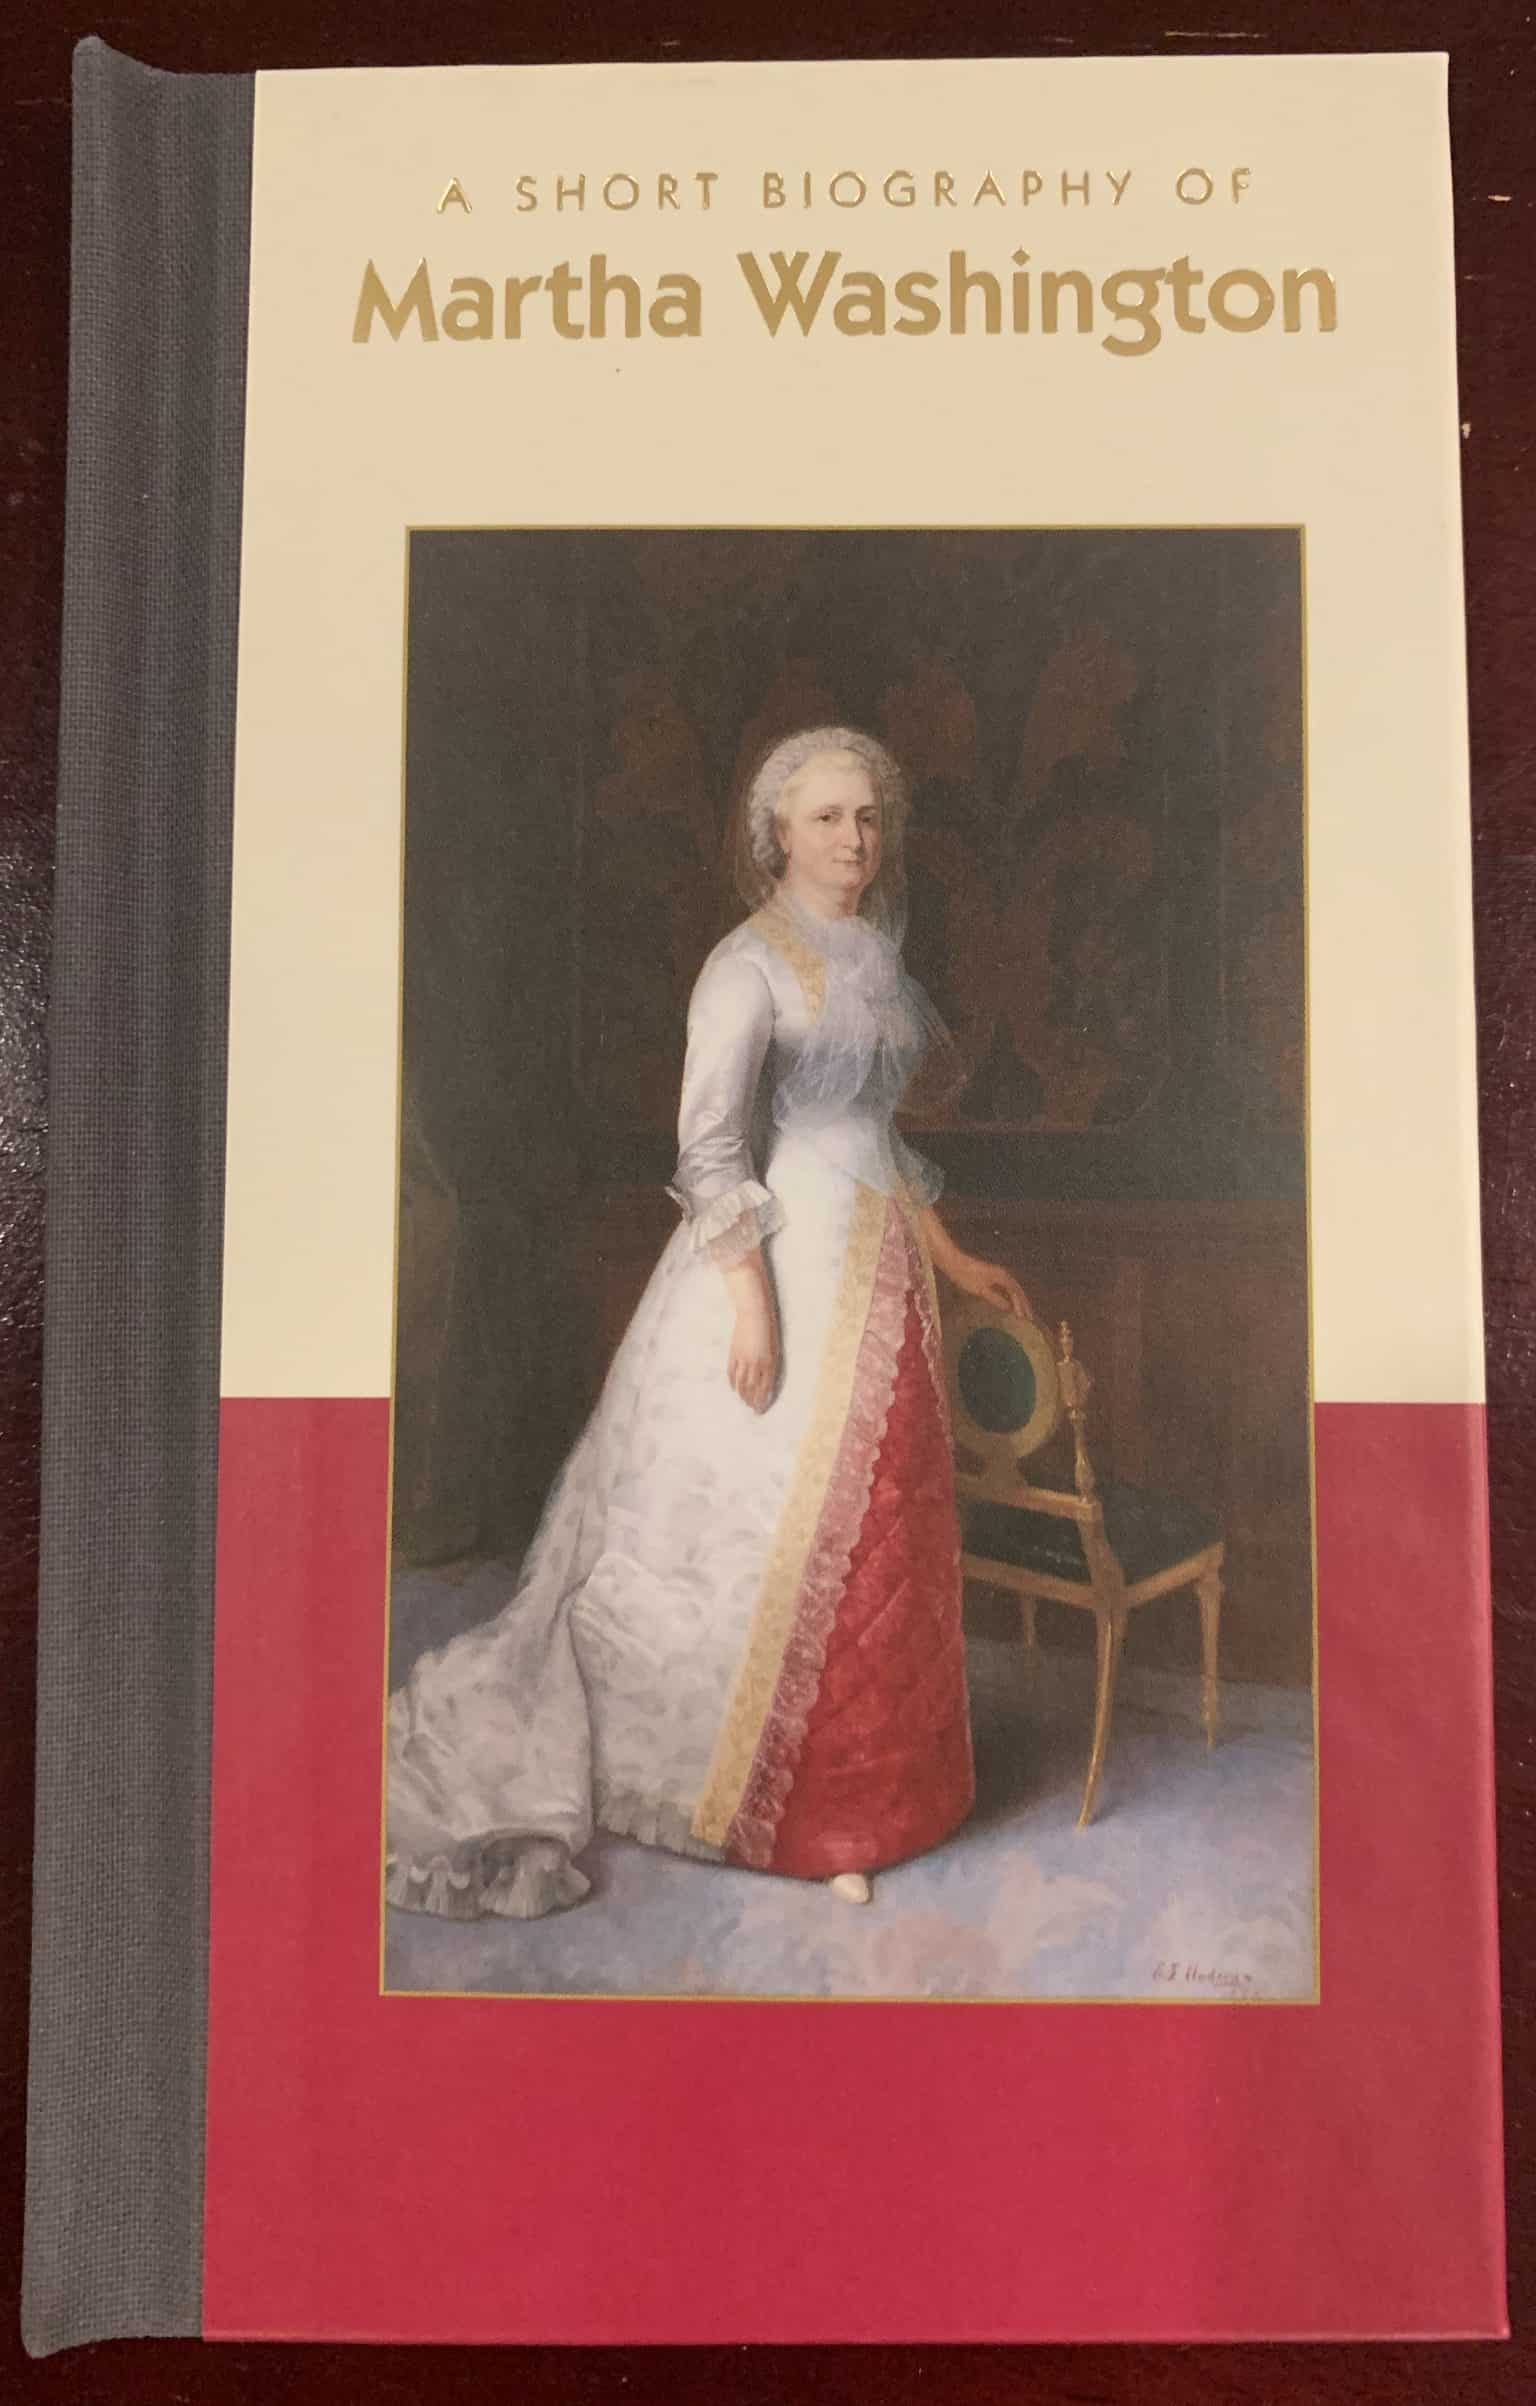 A Short Biography of Martha Washington